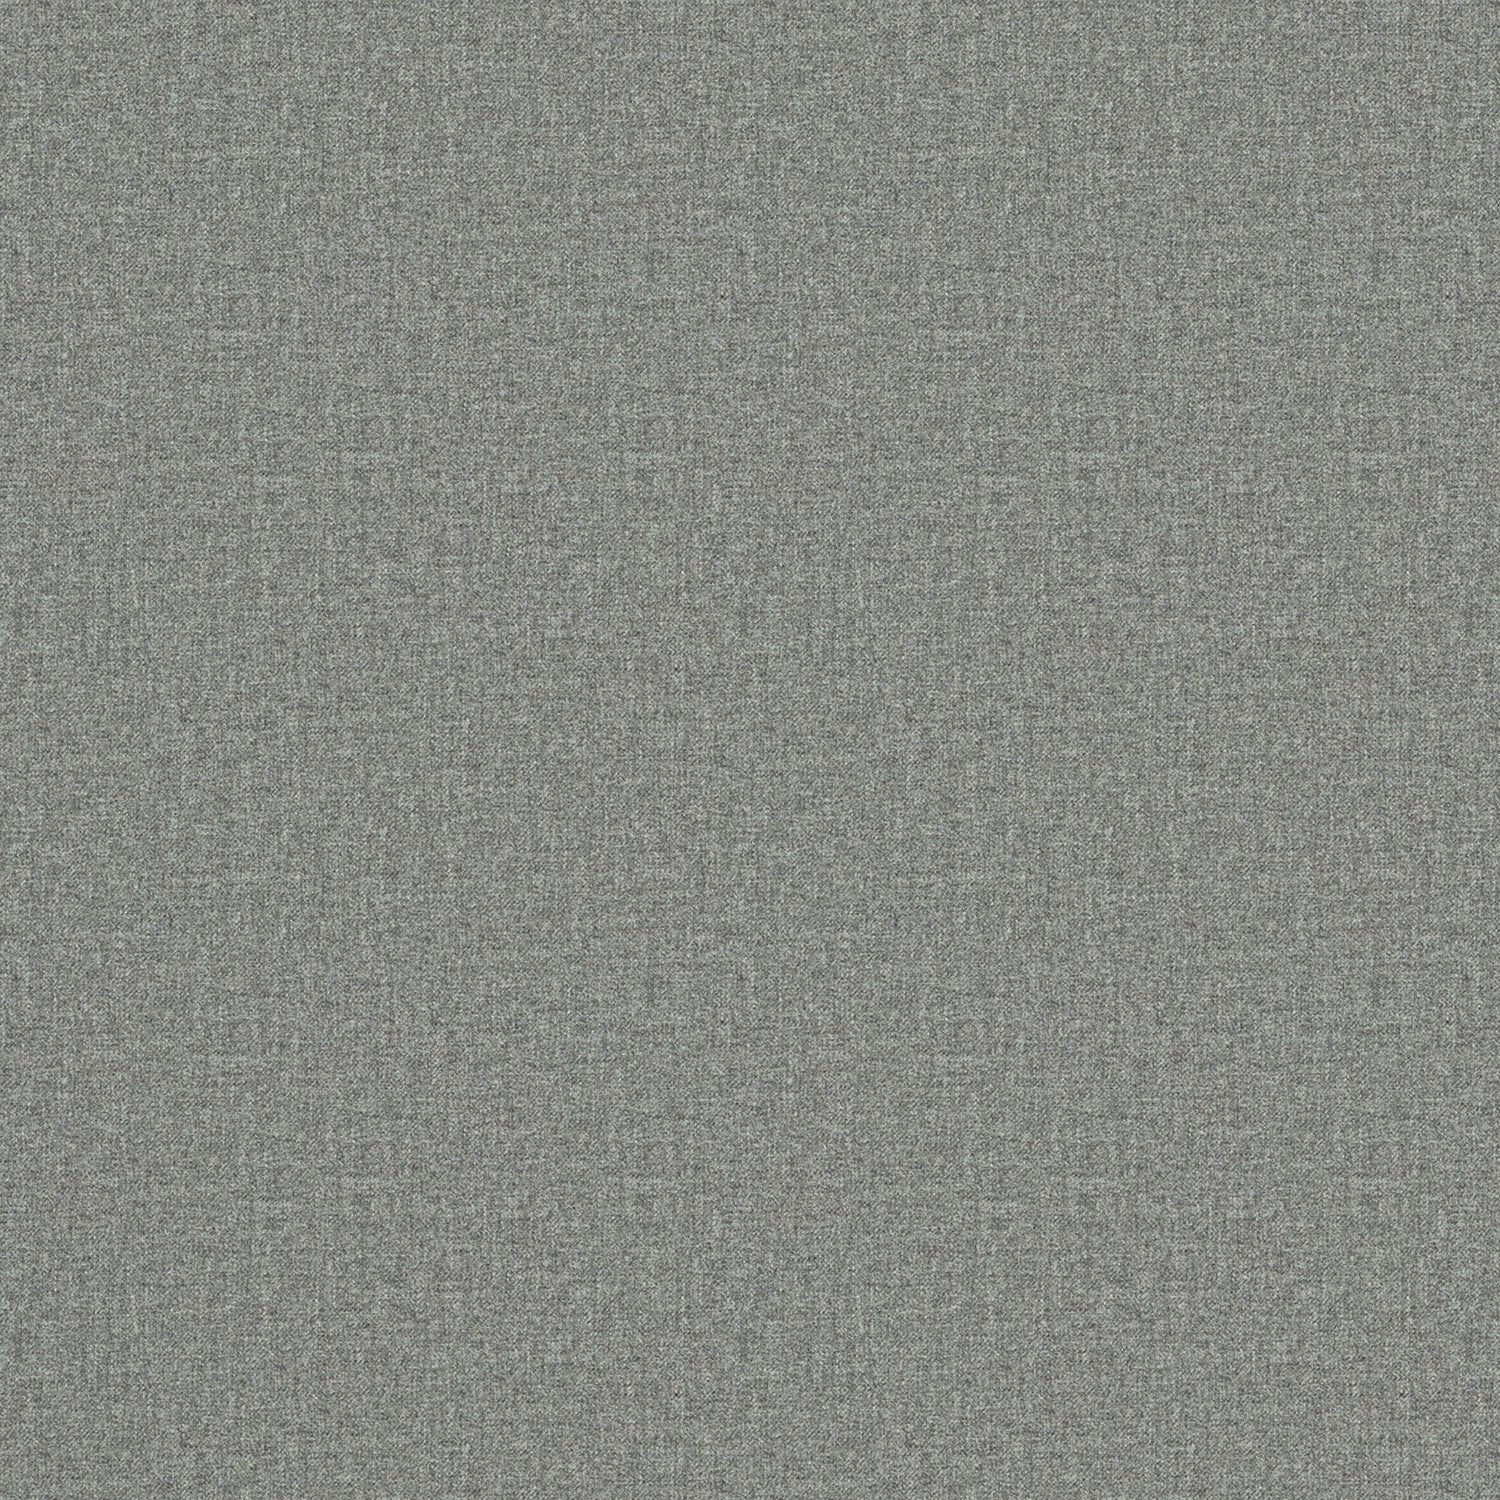 Fabric swatch of a luxury Scottish plain grey wool fabric suitable for curtains and upholstery